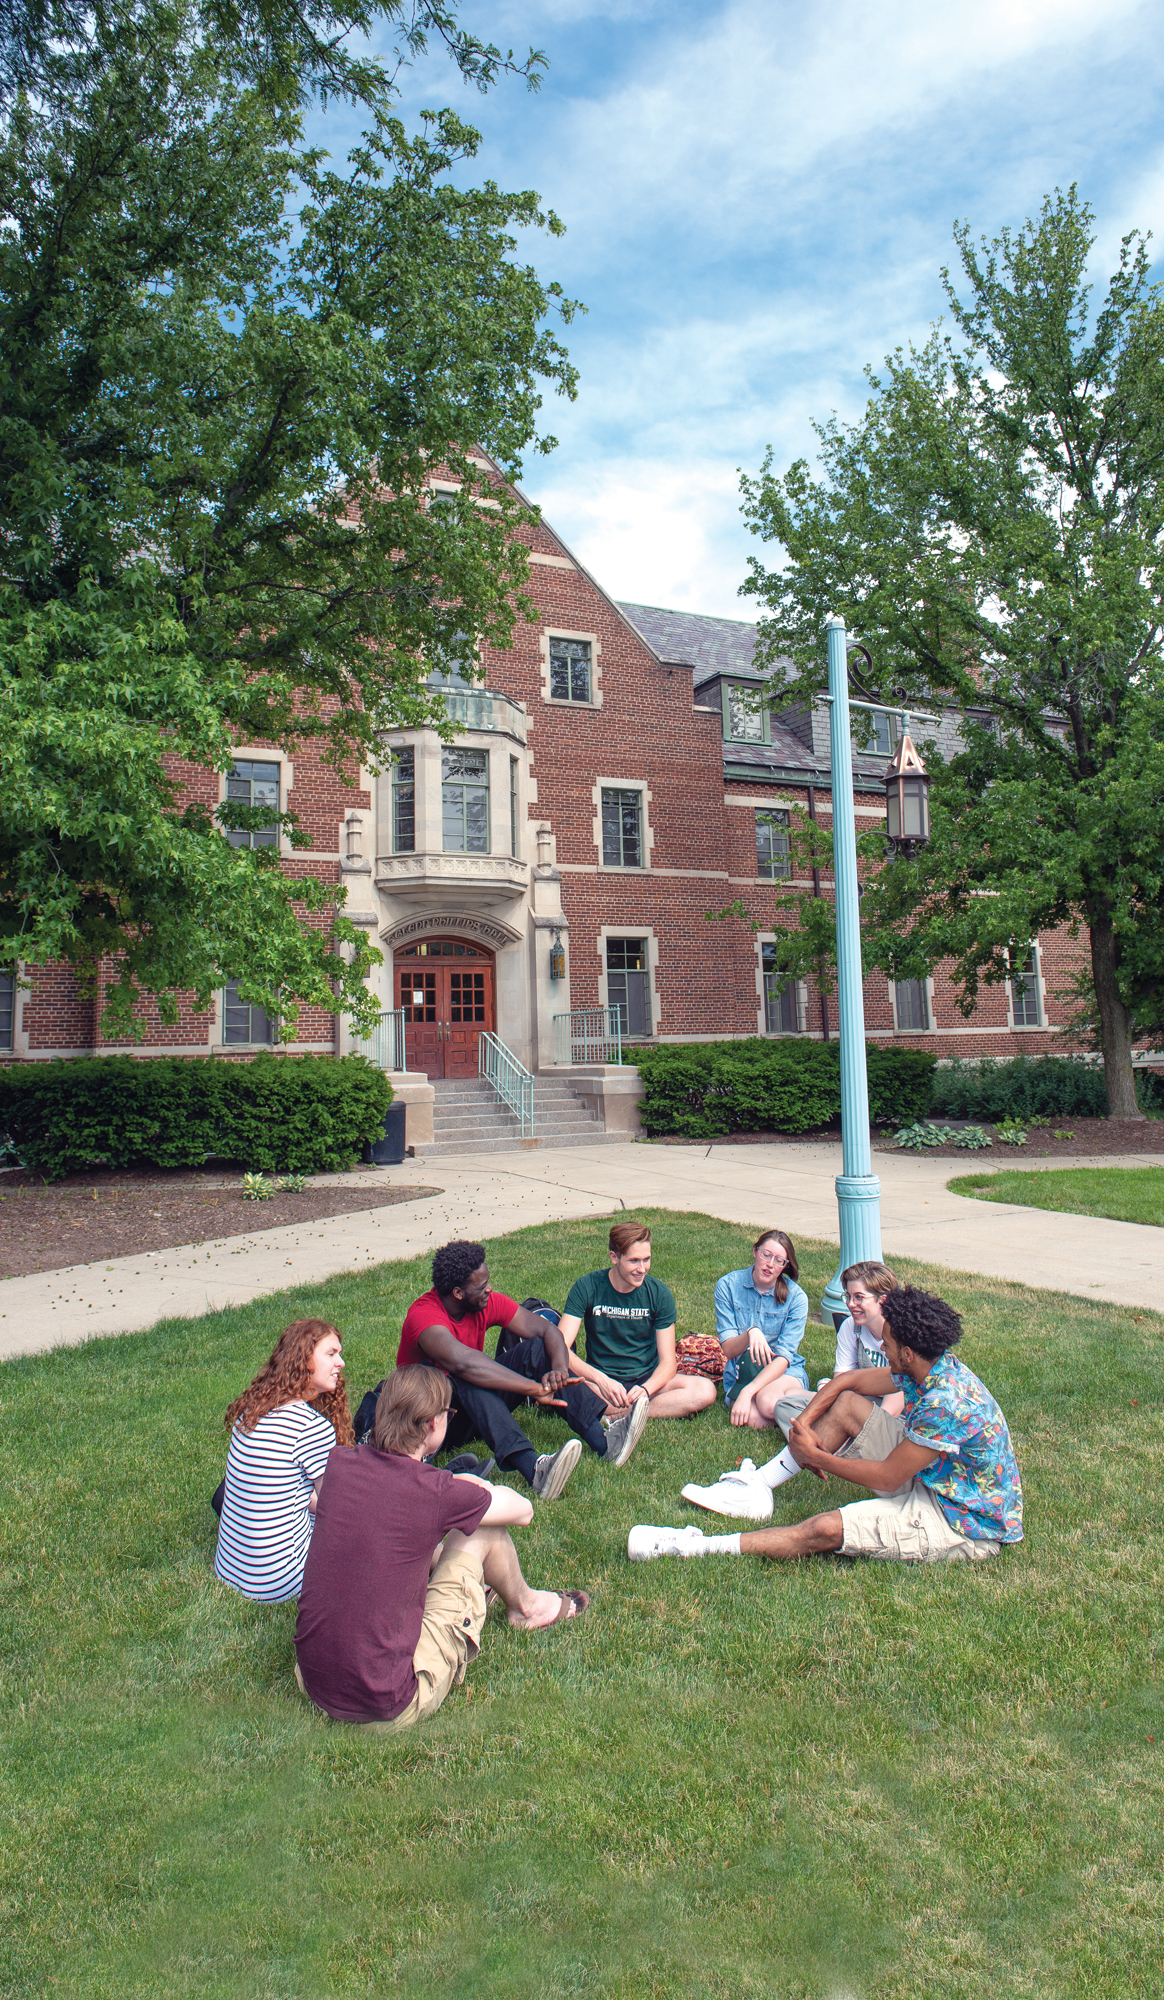 A diverse group of students sit outside in a circle in front of a brick building: Phillips Hall.